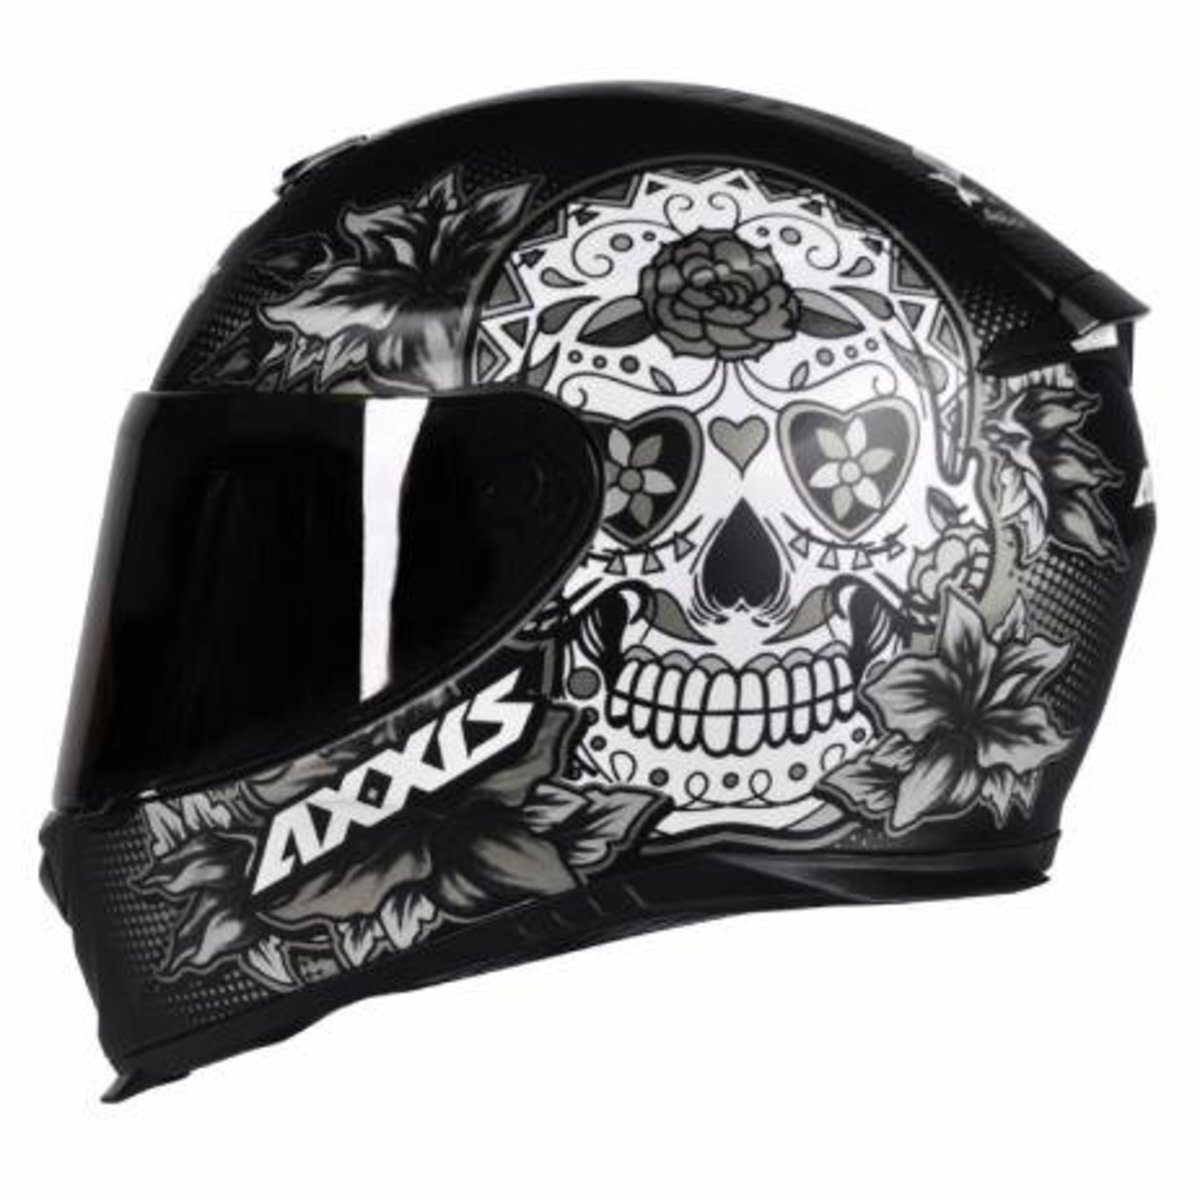 CAPACETE AXXIS EAGLE SKULL MATTE BLACK/GREY 62/XL